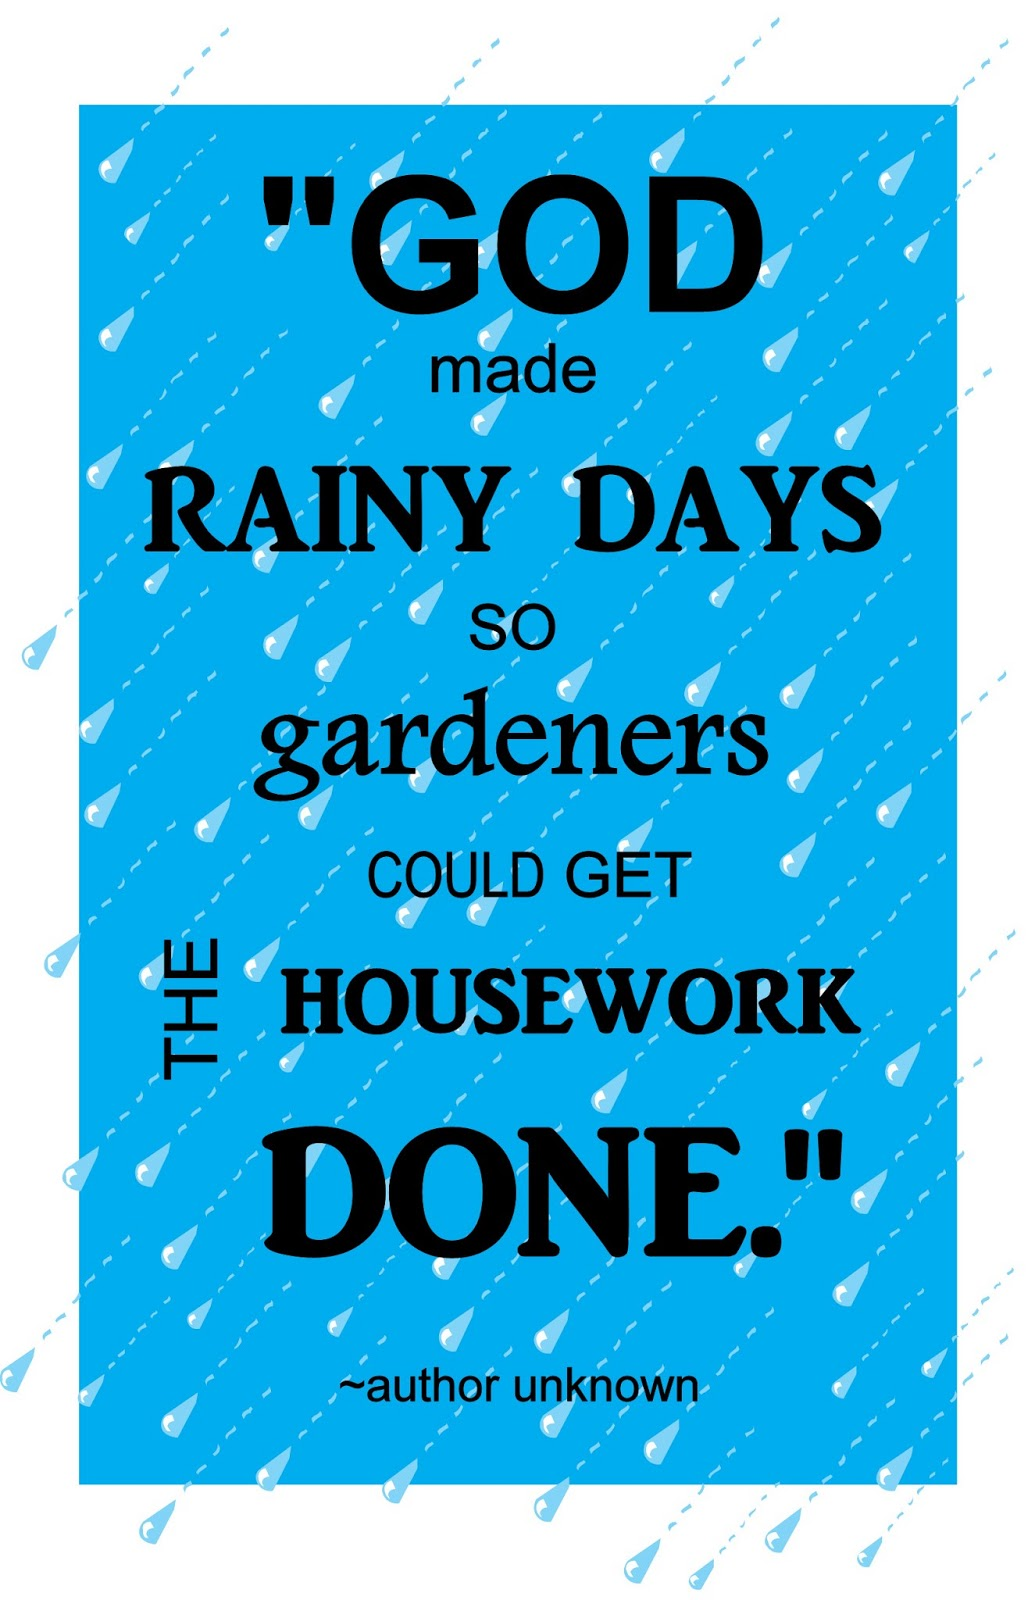 essay about rainy day 27 quotes have been tagged as rainy-day: elizabeth jane howard: 'a rainy day is like a lovely gift -- you can sleep late and not feel guilty', sanober k.